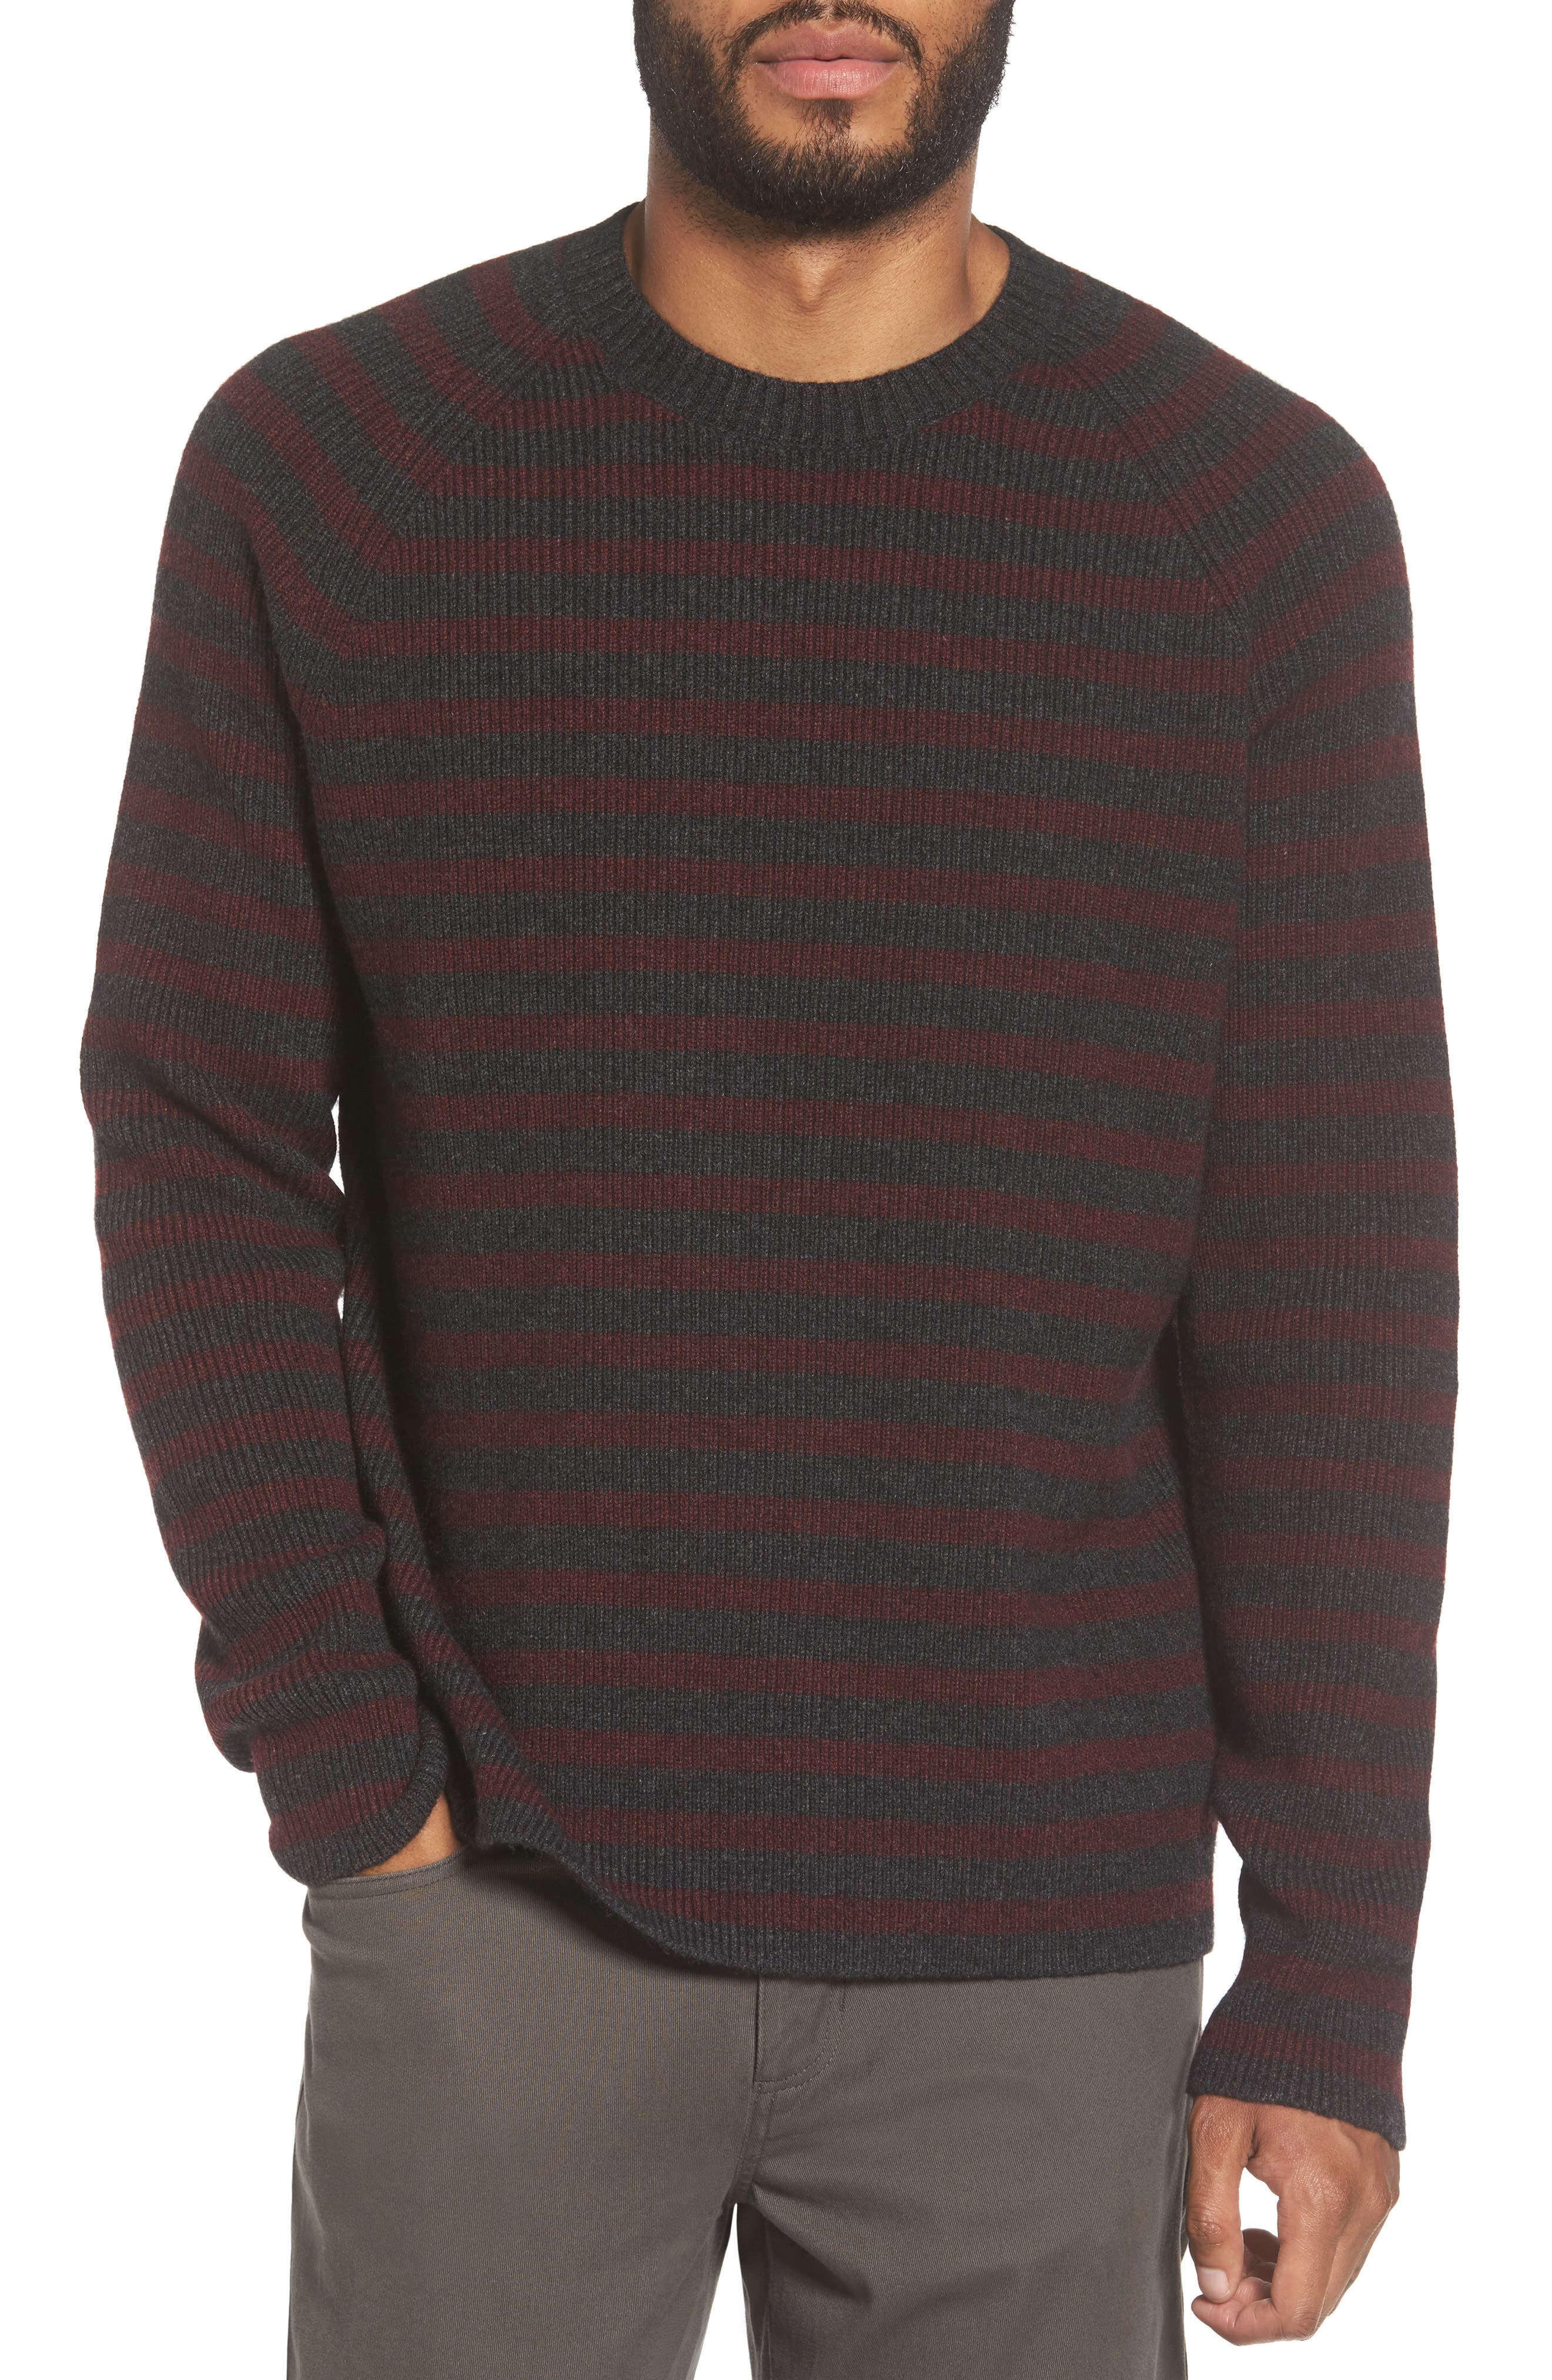 Stripe Wool & Cashmere Sweater,                         Main,                         color, Heather Carbon/ Burgundy